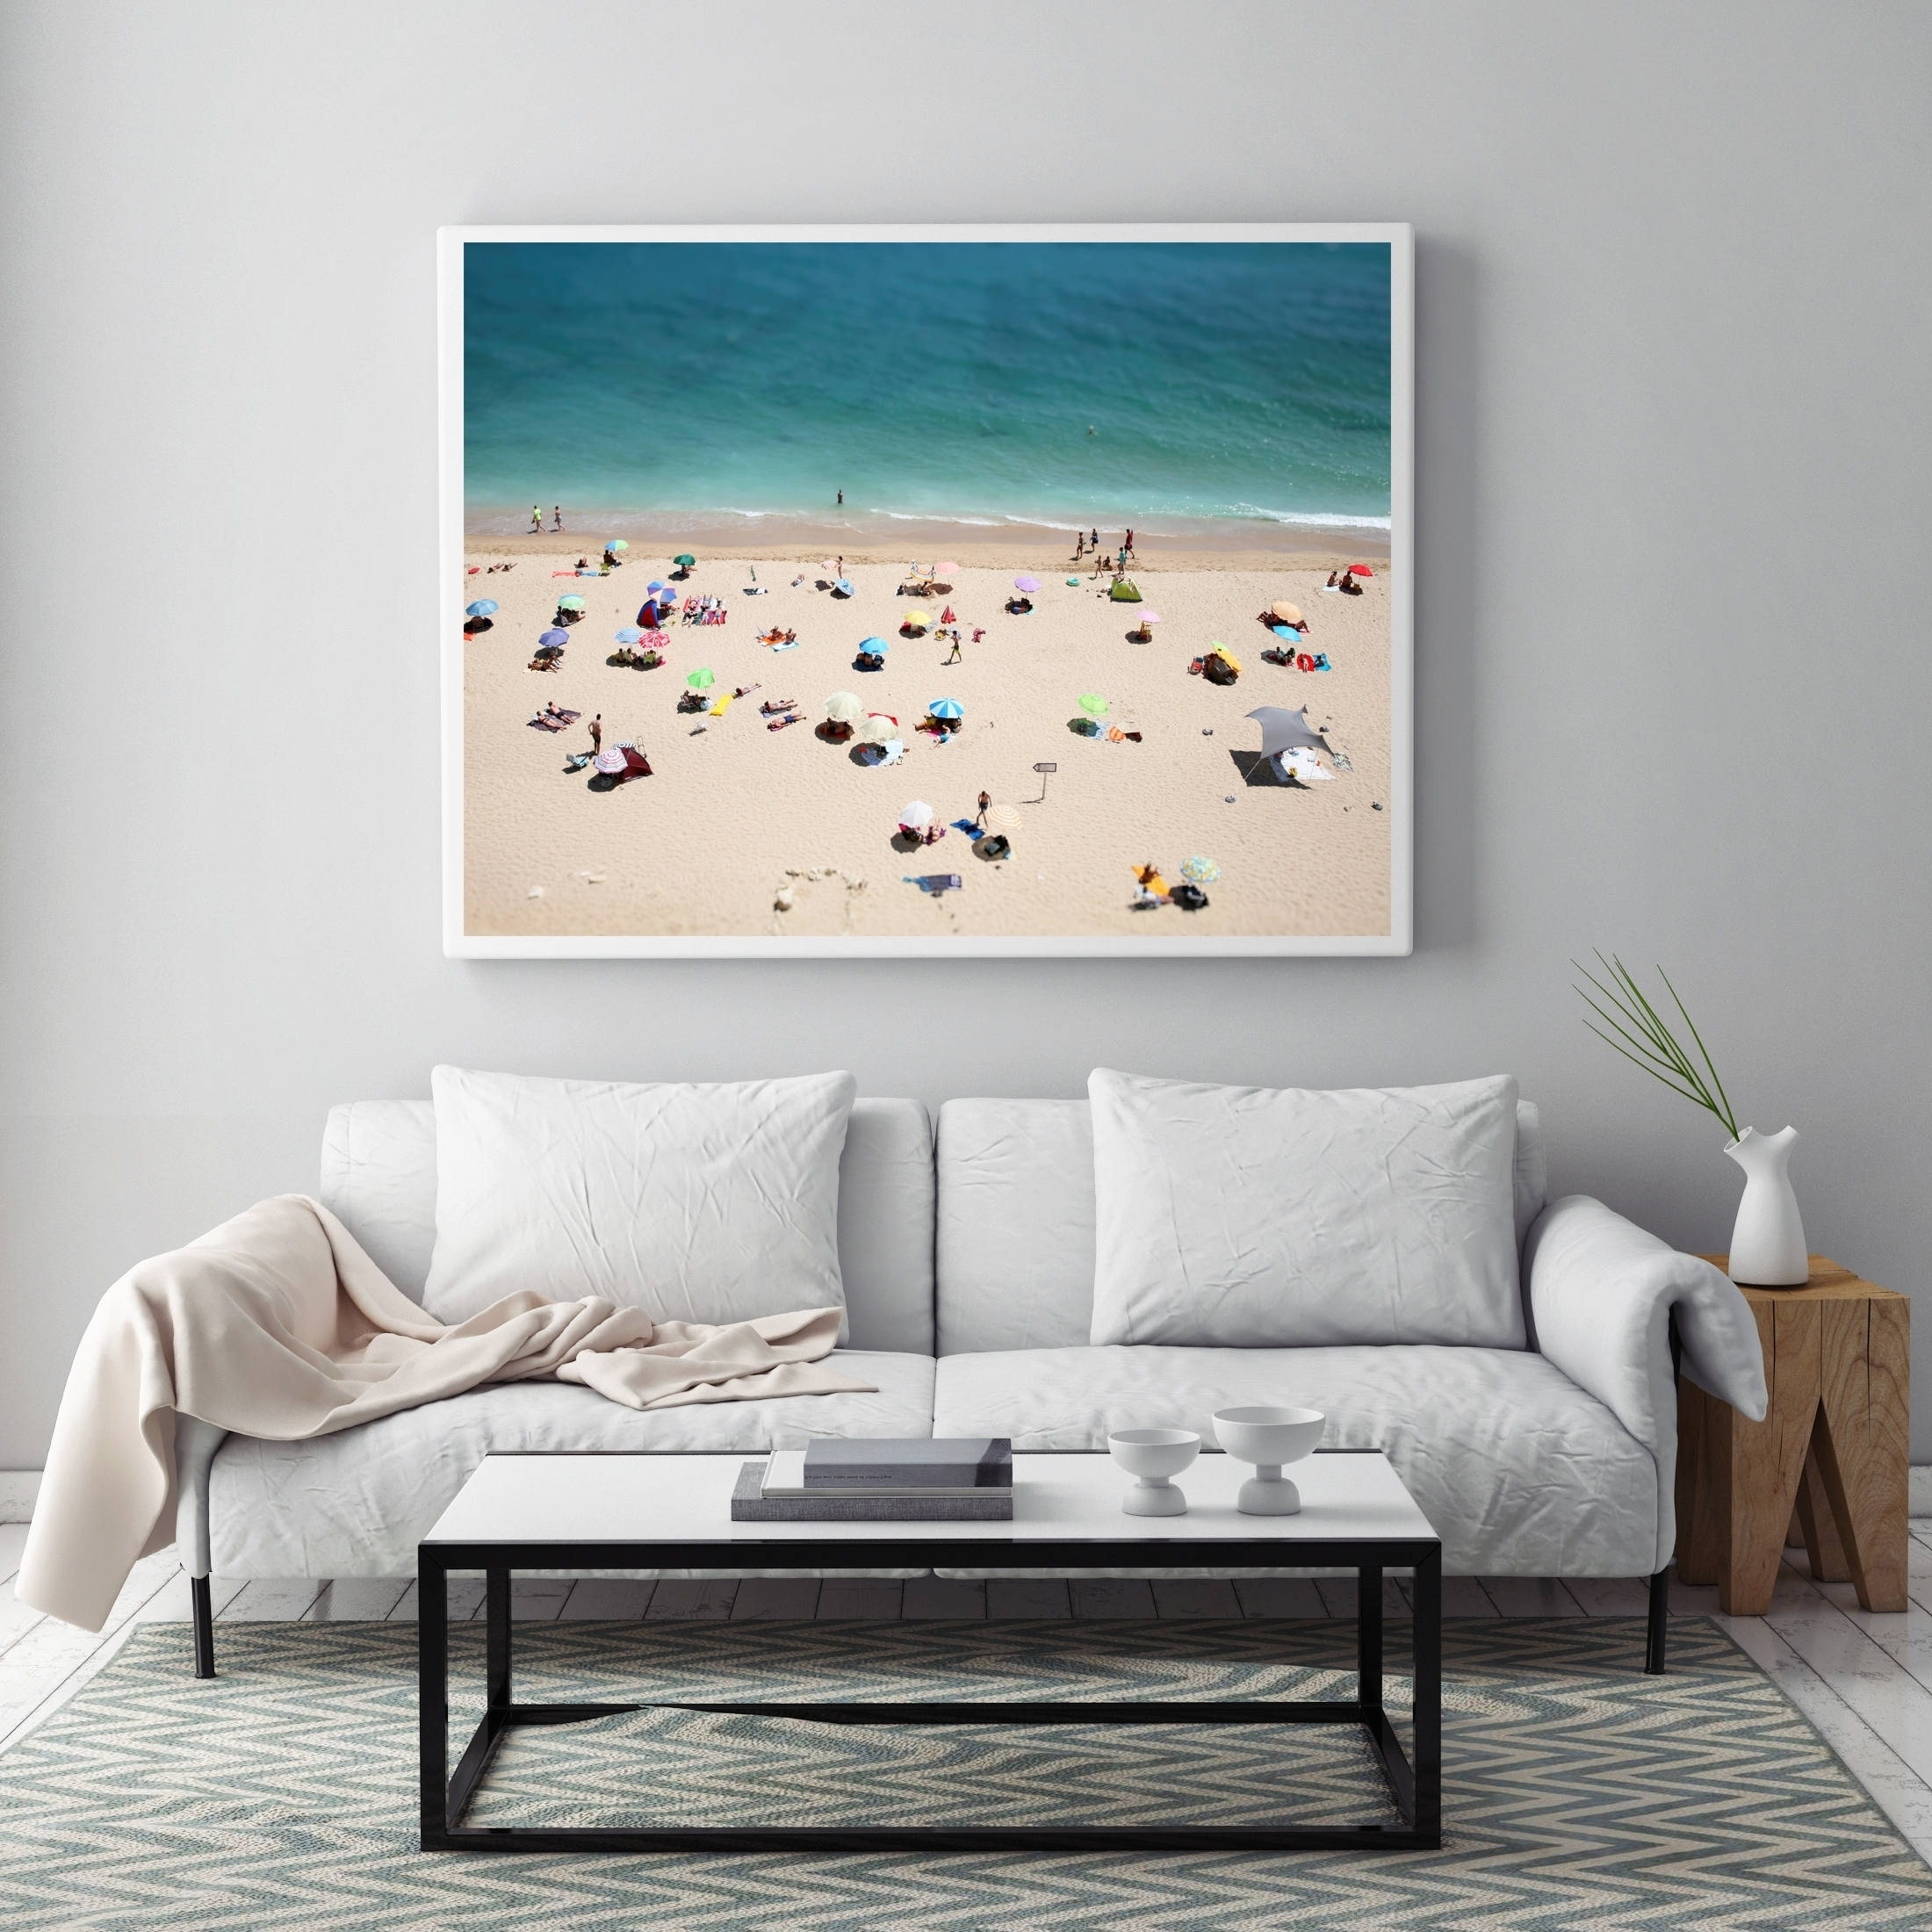 Large Coastal Wall Art Regarding 2017 31 Best Of Large Coastal Wall Art (View 6 of 20)